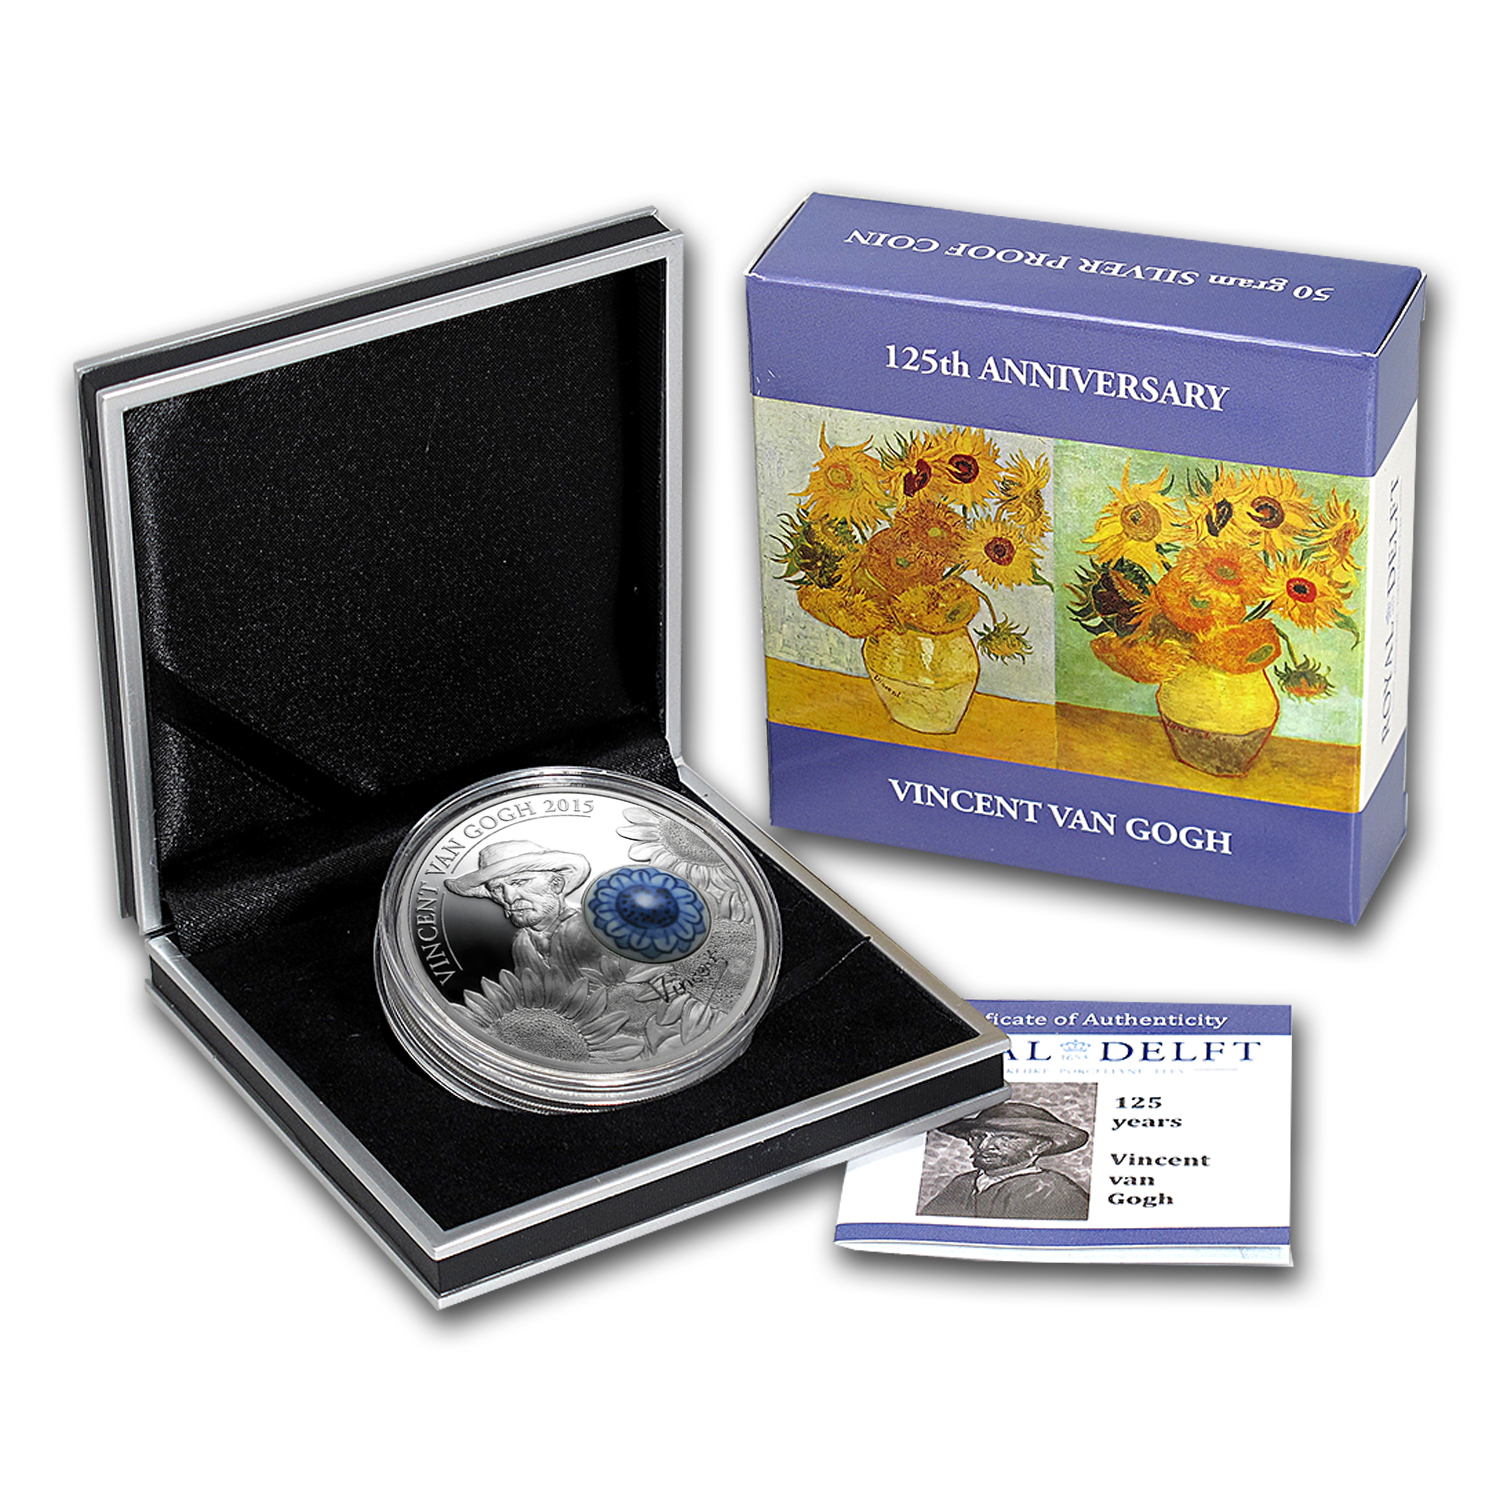 2015 Cook Islands Silver Royal Delft™ 125th Ann. Vincent van Gogh